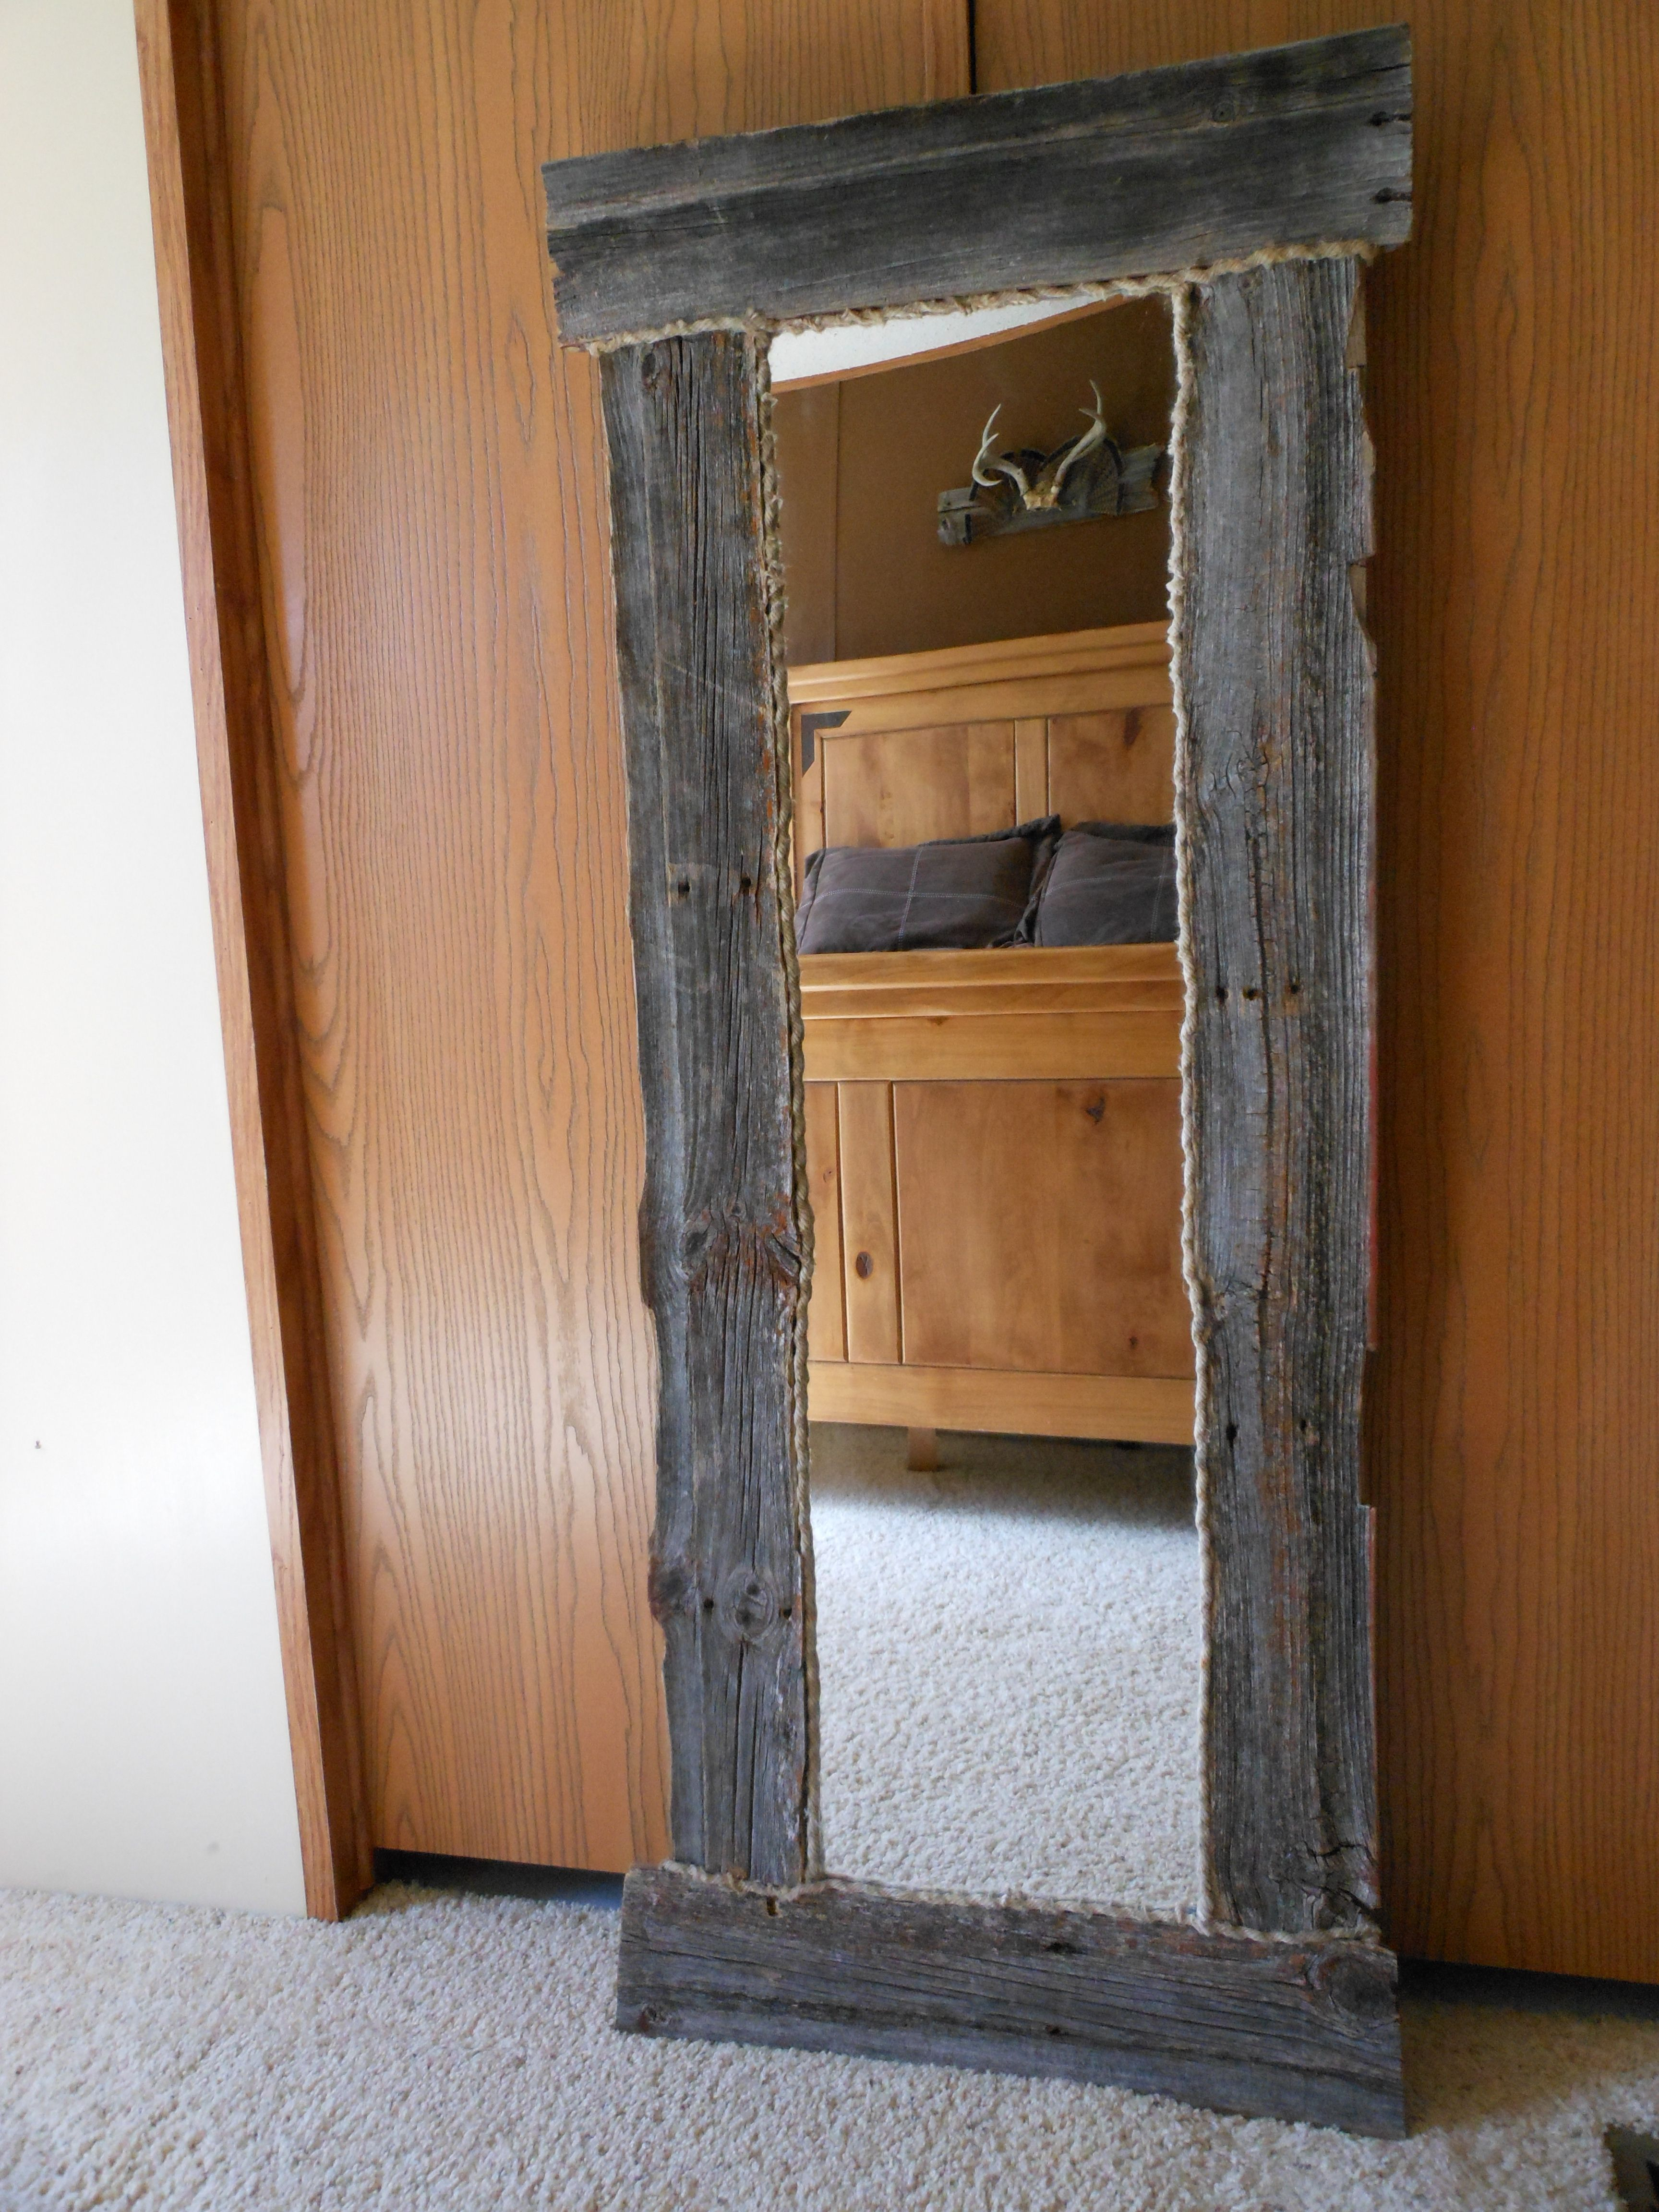 Barn Wood Mirror Rustic Home Decor: Barn Wood Mirror With Rope Edging I Made